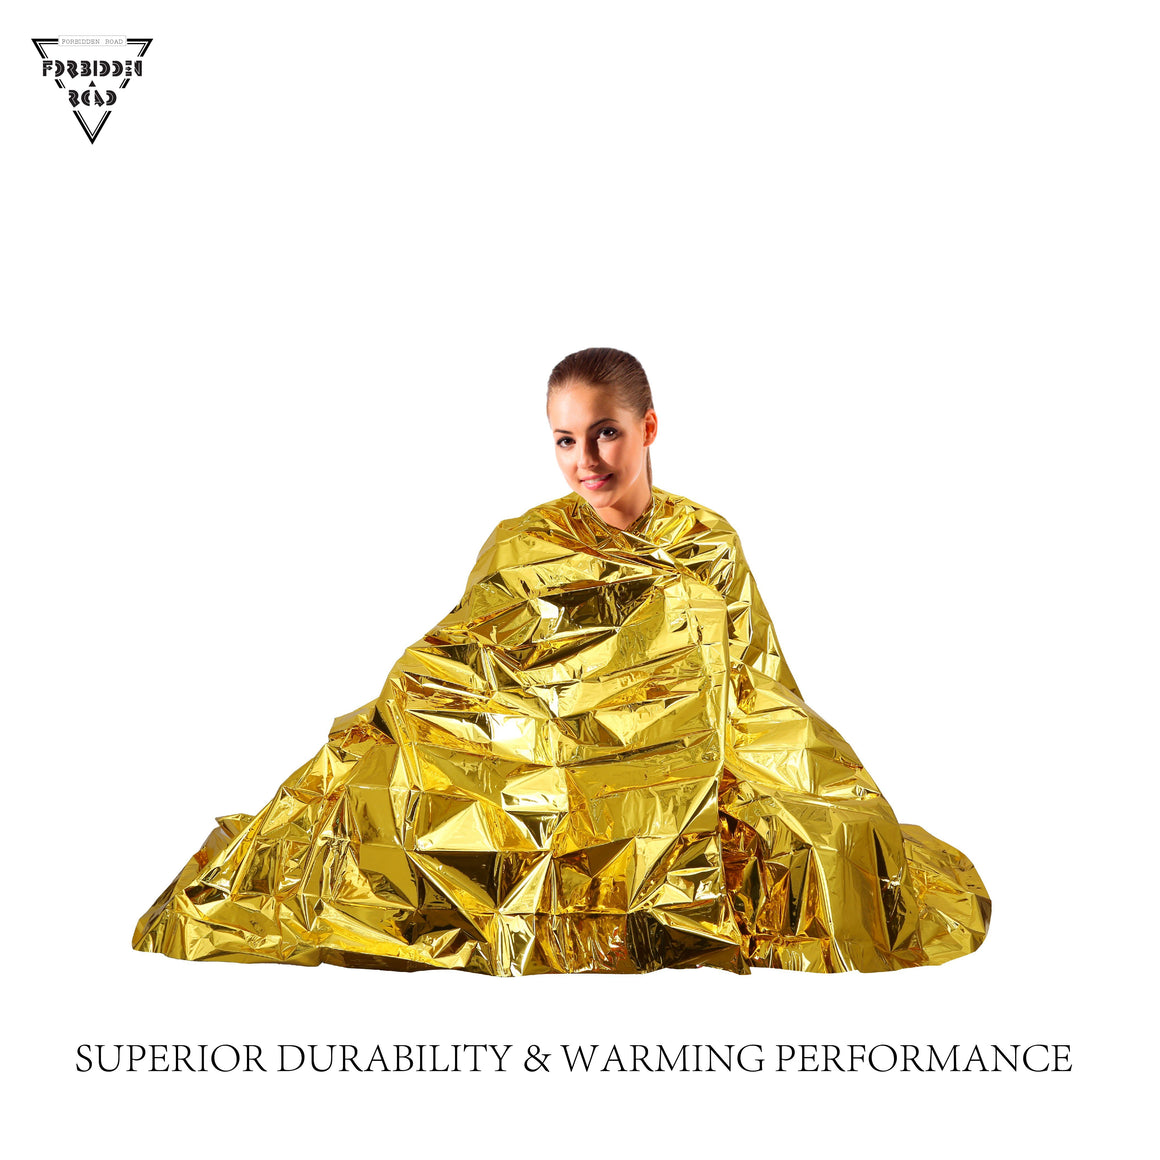 Emergency Blanket Thermal Blanket Survival First Aid Blanket for Camping Hiking - Gold - Forbidden Road